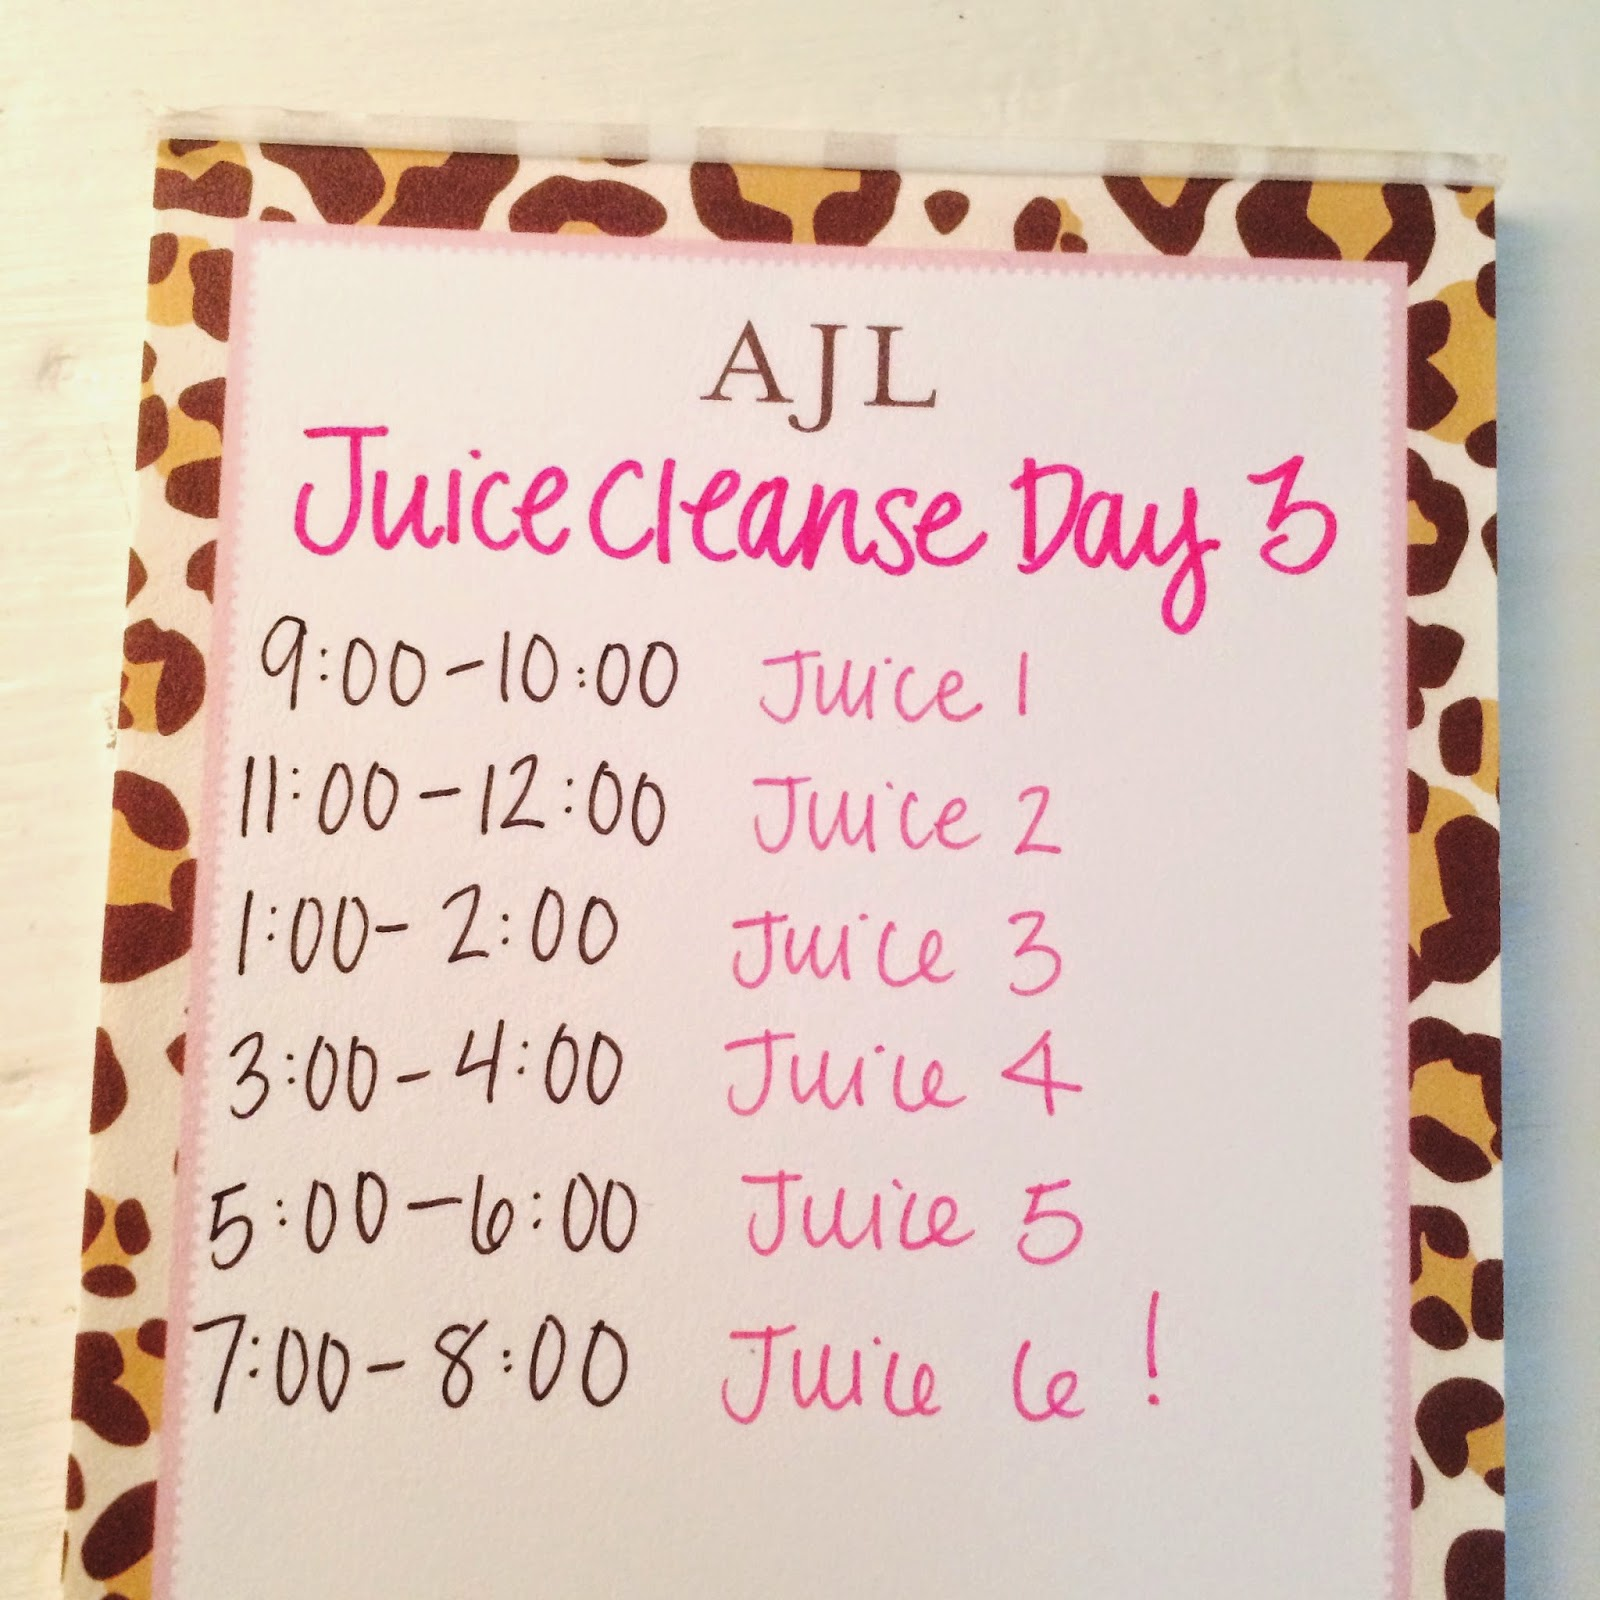 All about the juice cleanse i believe in pink jessica dallas tx kelly bethesda md malvernweather Gallery